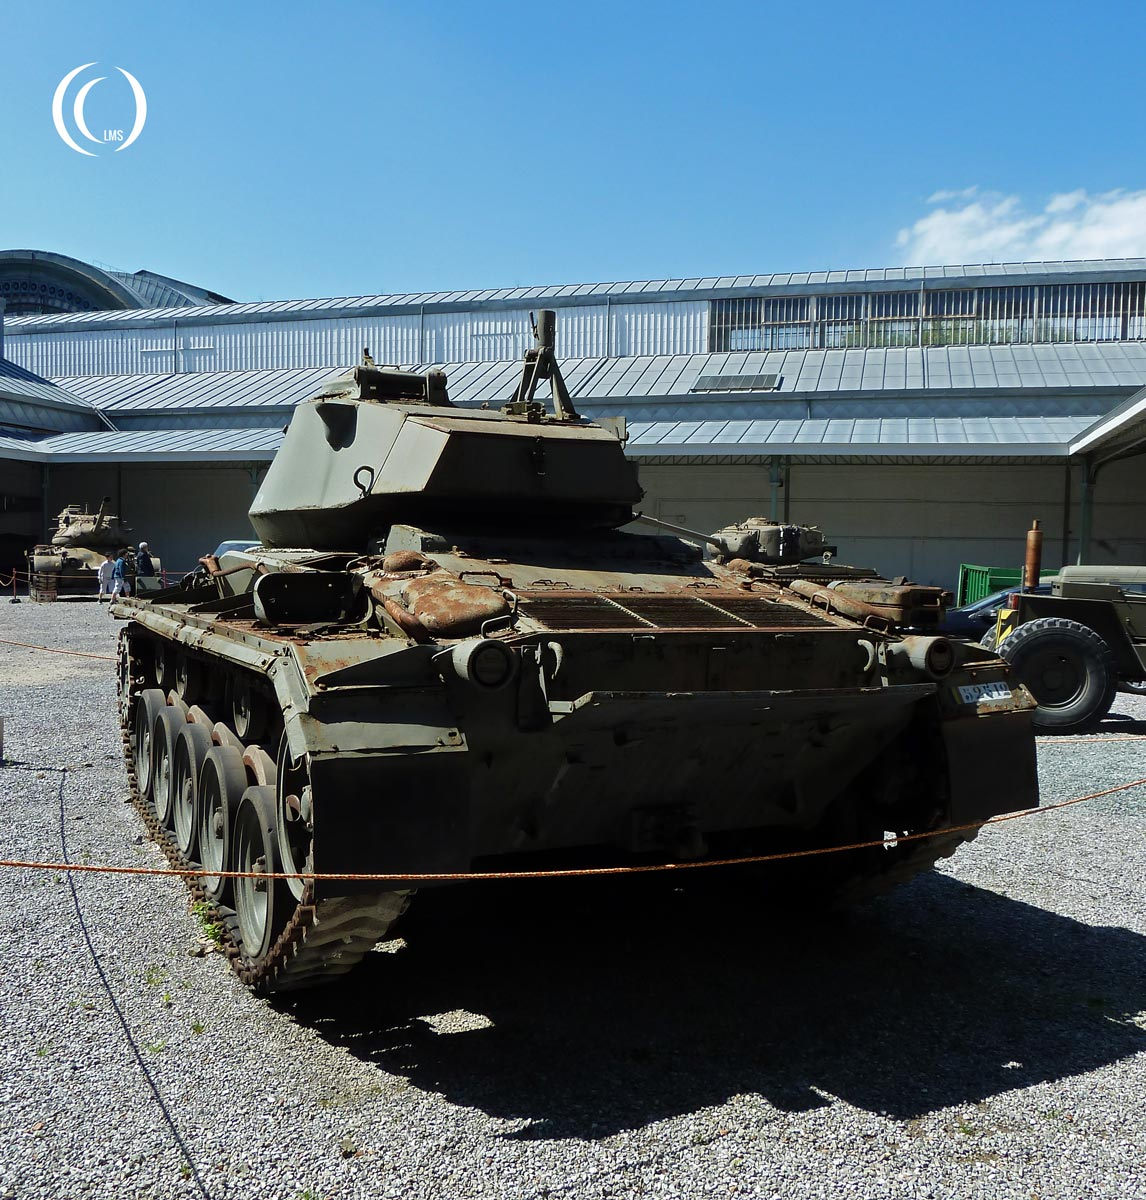 M24-Chaffee-tank-Brussels-back